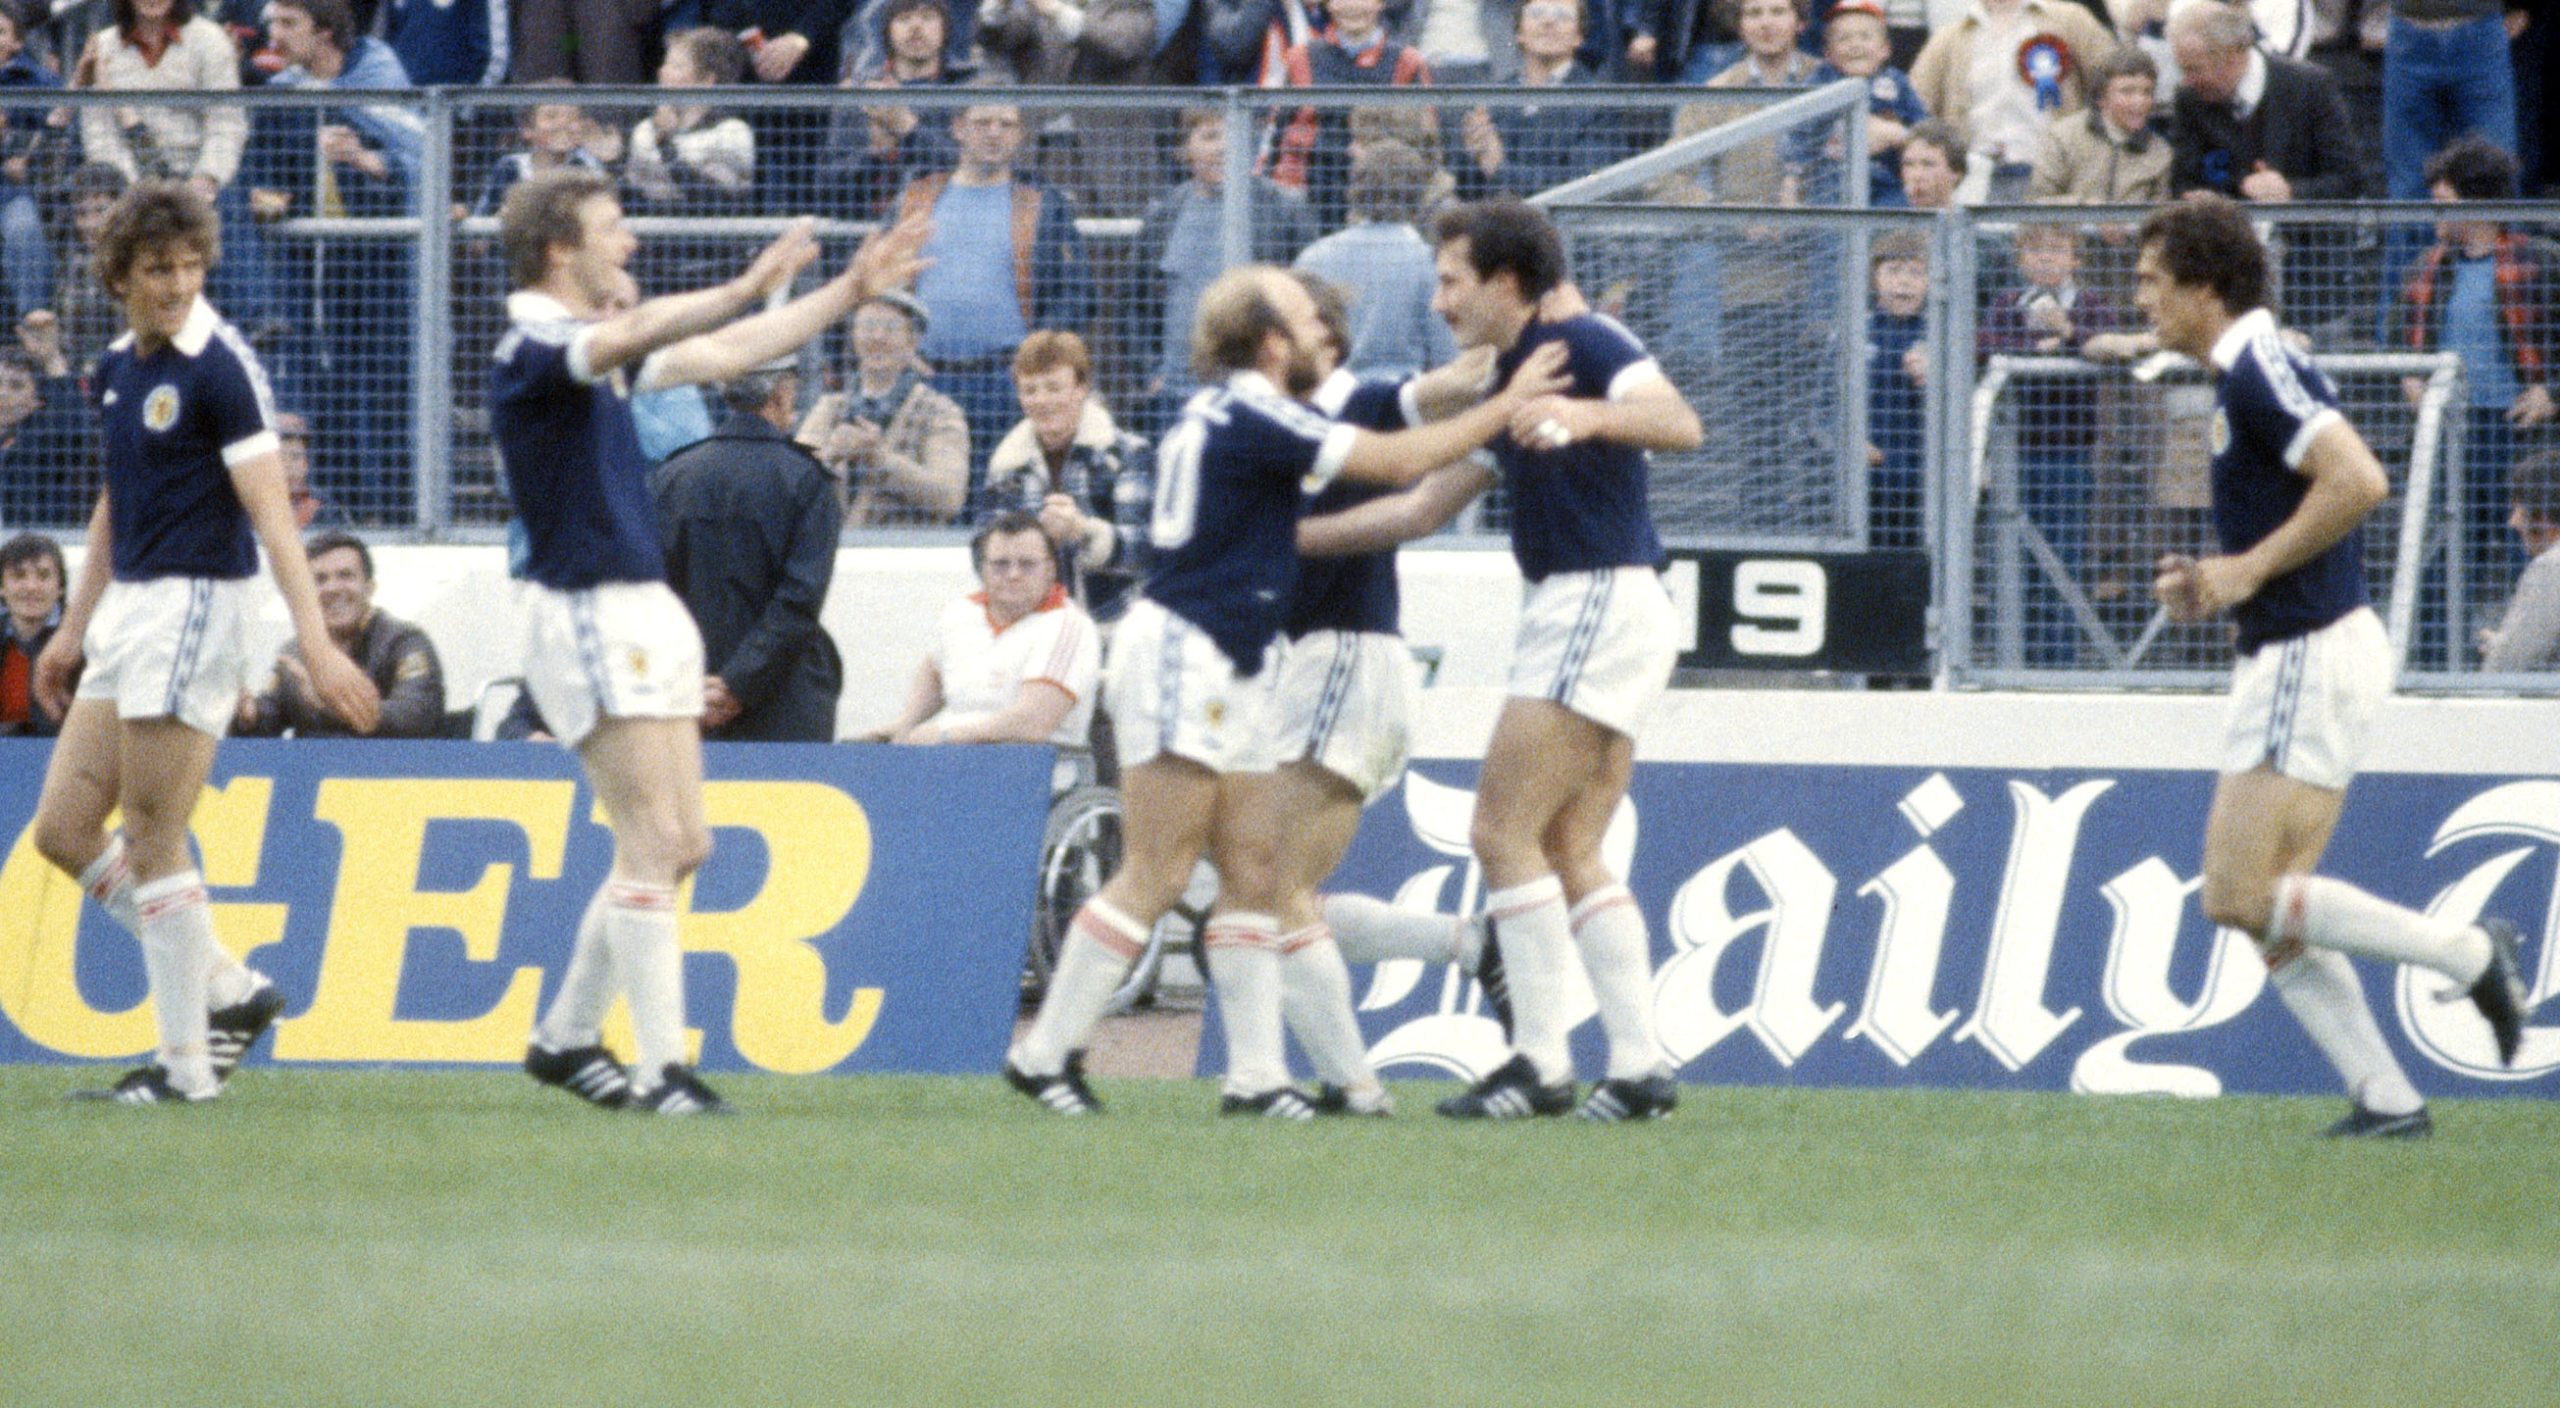 Scotland's Willie Miller (2nd right) celebrates scoring against Wales in 1980 with teammates (l to r): Peter Weir, Paul Hegarty, Archie Gemmill and Joe Jordan)